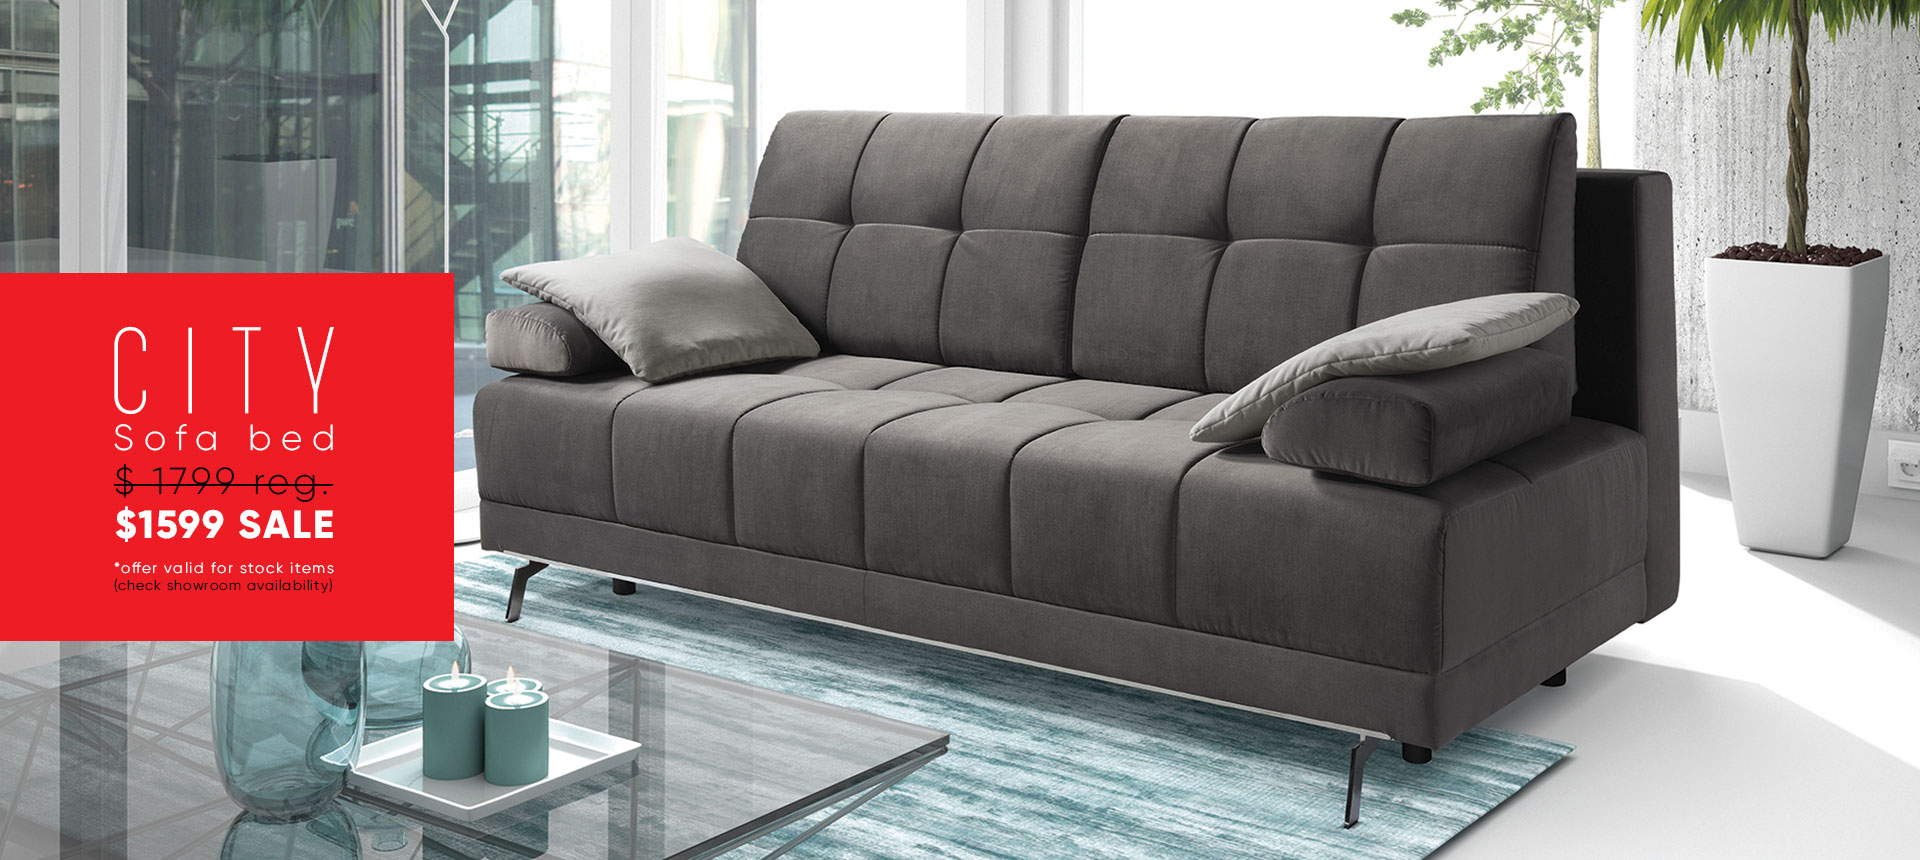 City Sofa Bed - $1599 sale - Online store Smart Furniture Mississauga